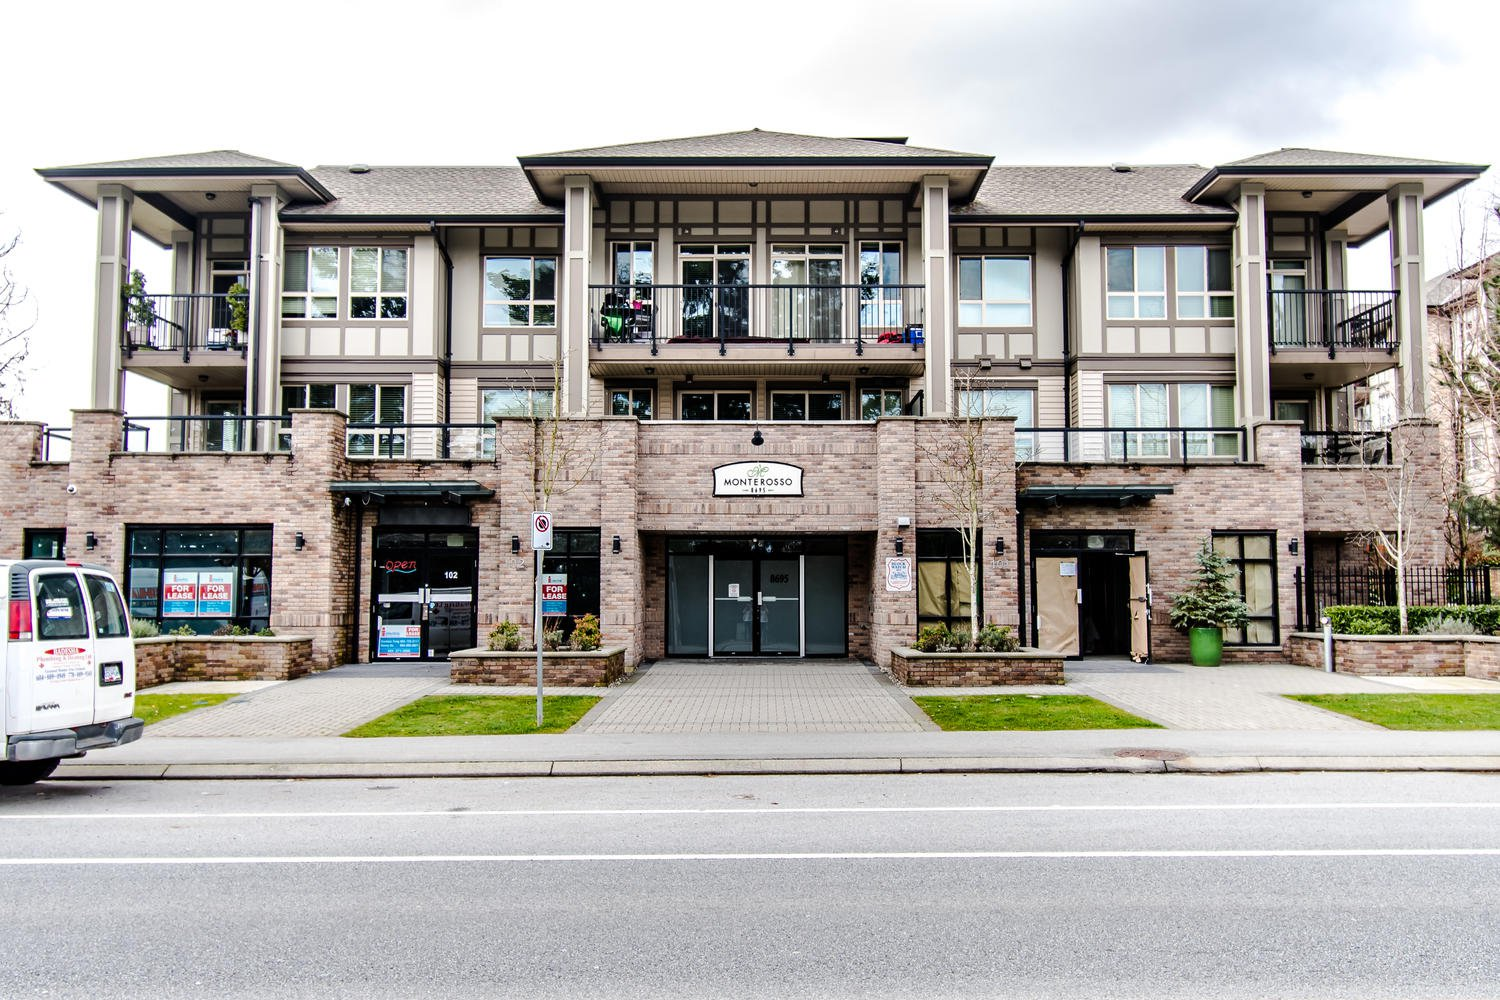 "Main Photo: 207 8695 160 Street in Surrey: Fleetwood Tynehead Condo for sale in ""MONTEROSSO"" : MLS®# R2442020"